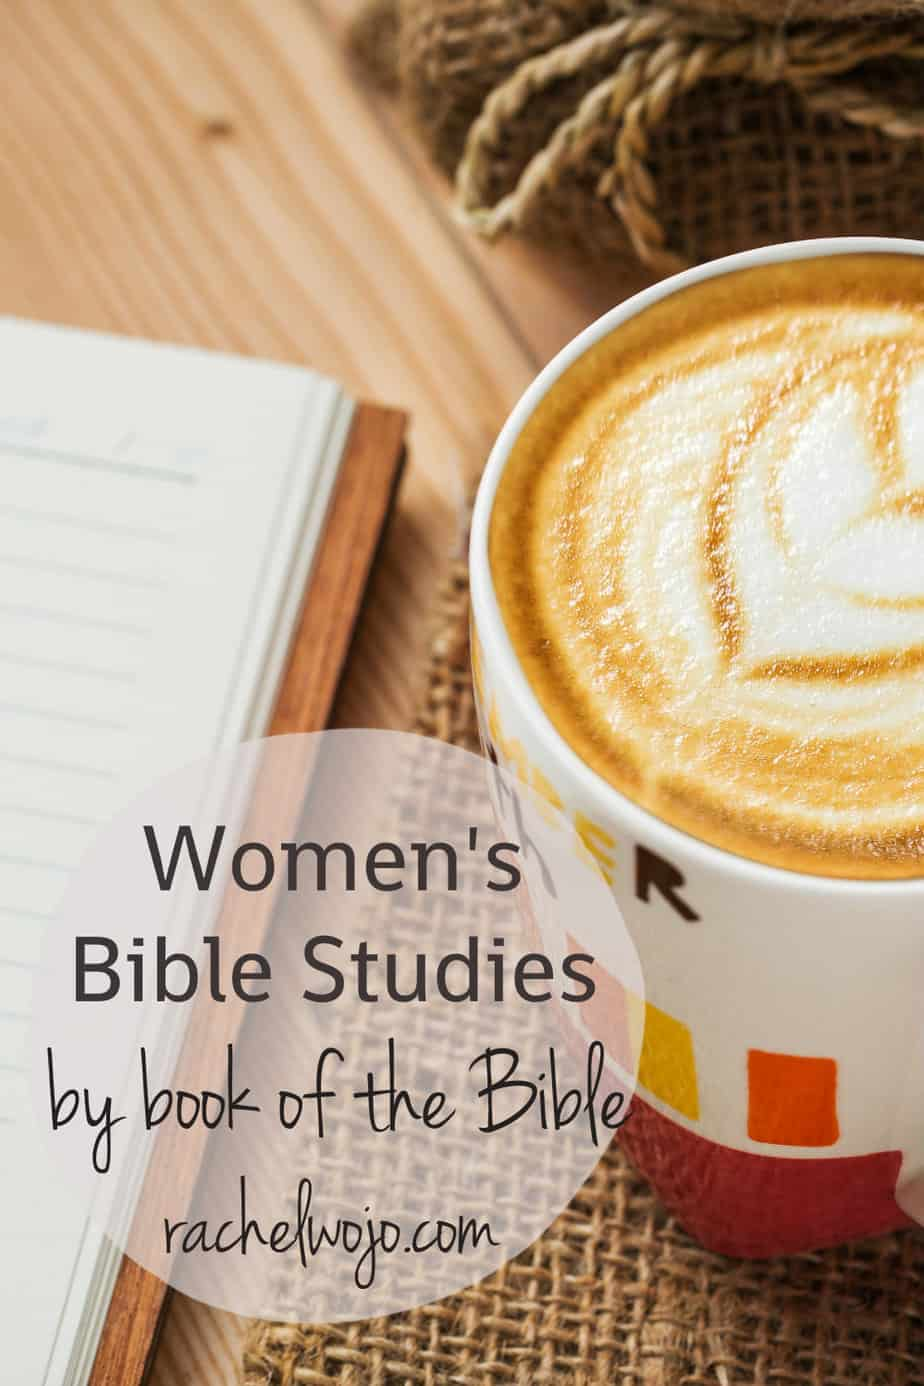 PDF- Downloadable Books - Free Christian Bible Study Books